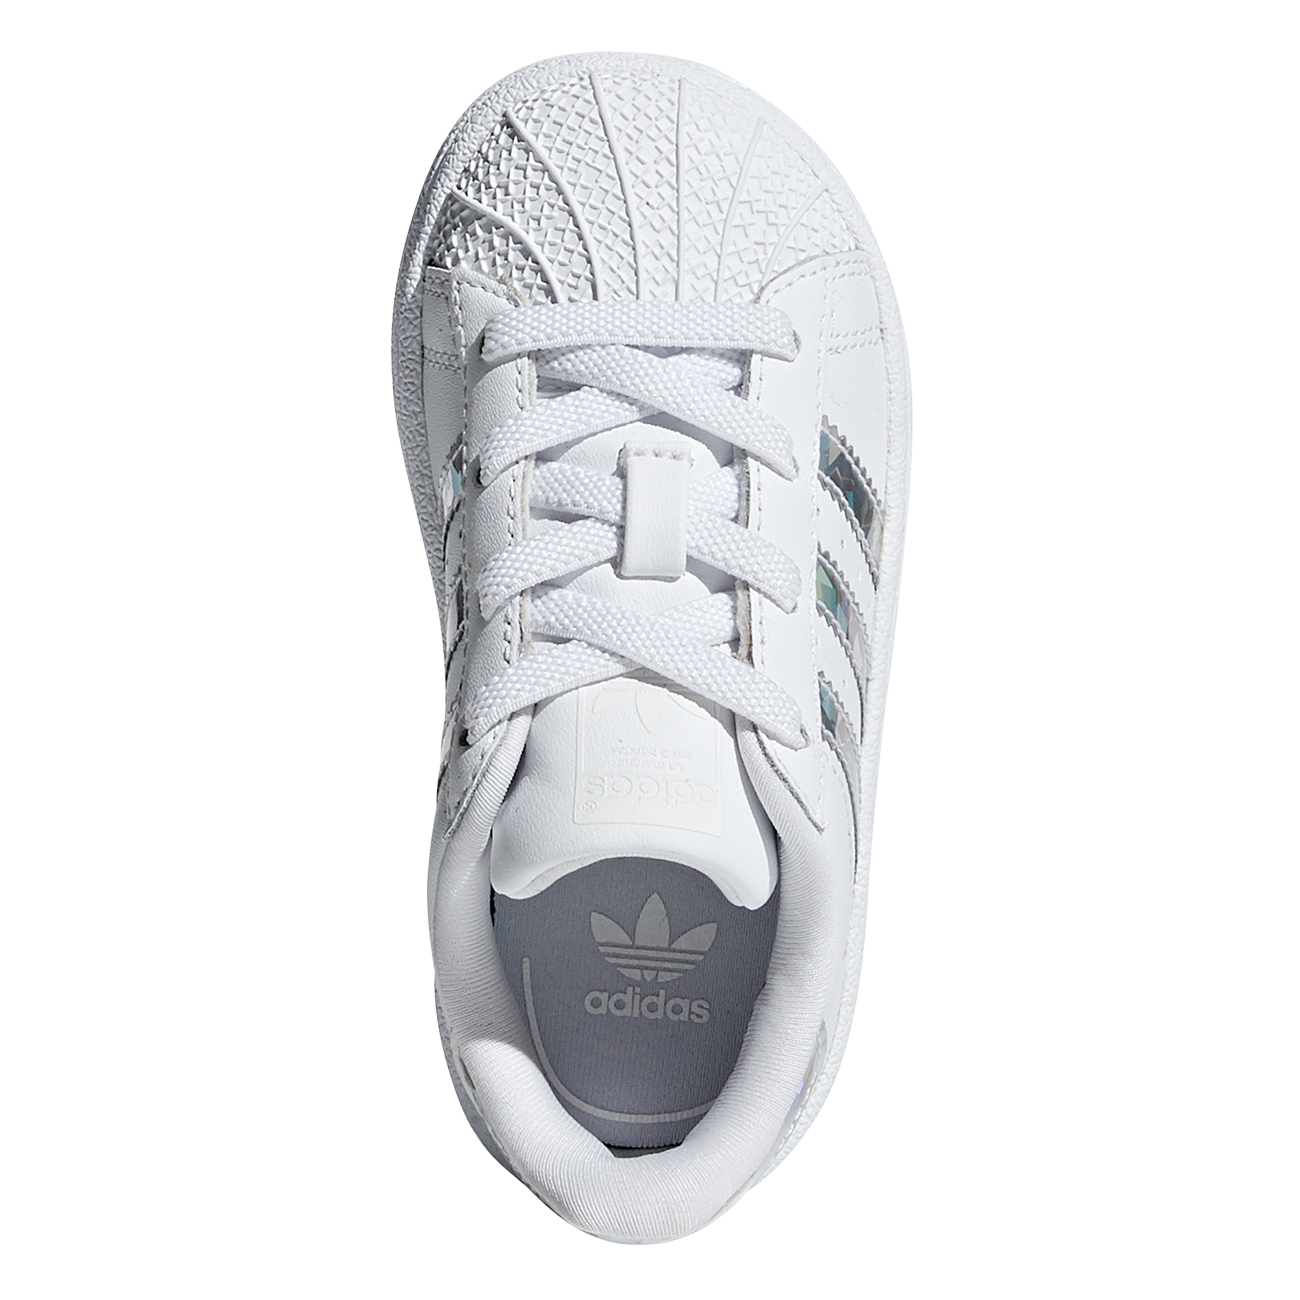 adidas Superstar Sneakers WhiteWhite Metallic